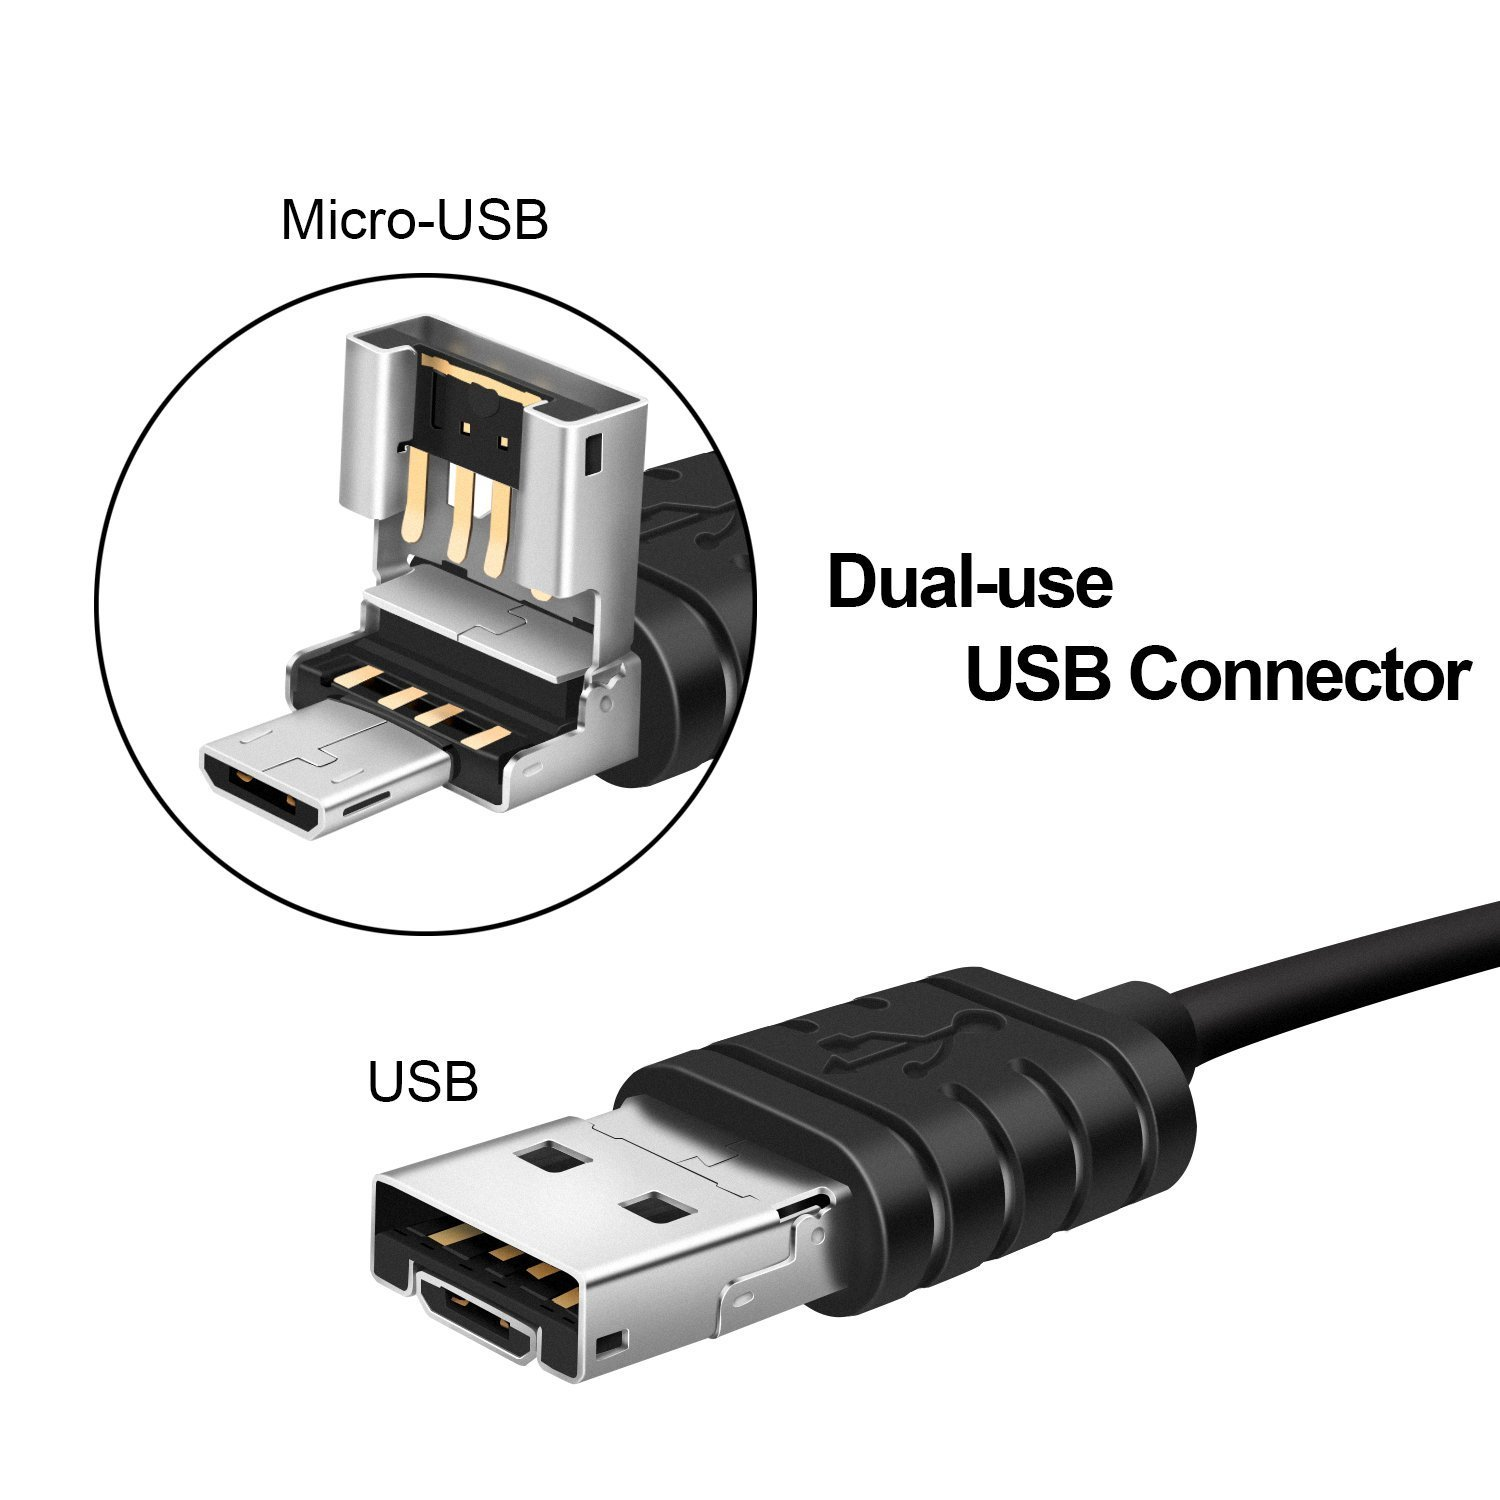 Impartial Universal Wristband Micro Usb Cable Charger Charging Data Sync For Android Cell Phone Micro Usb Cable Cord Power Convenience Goods Accessories & Parts